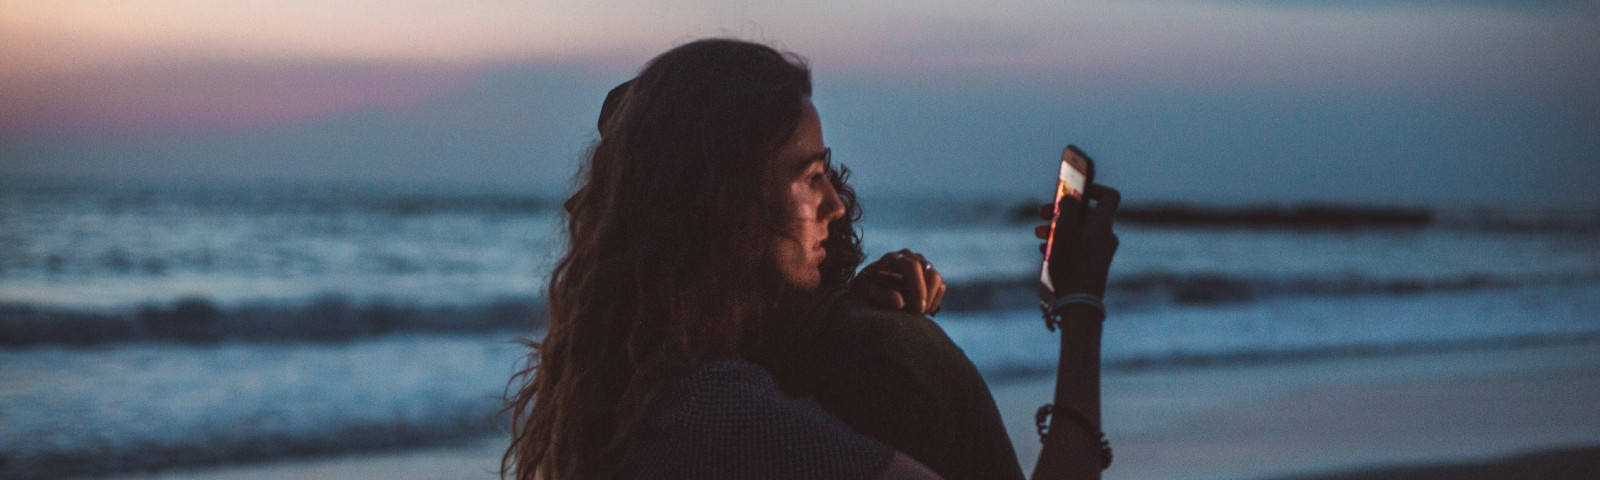 Two people hug on a beach while looking at their phones.